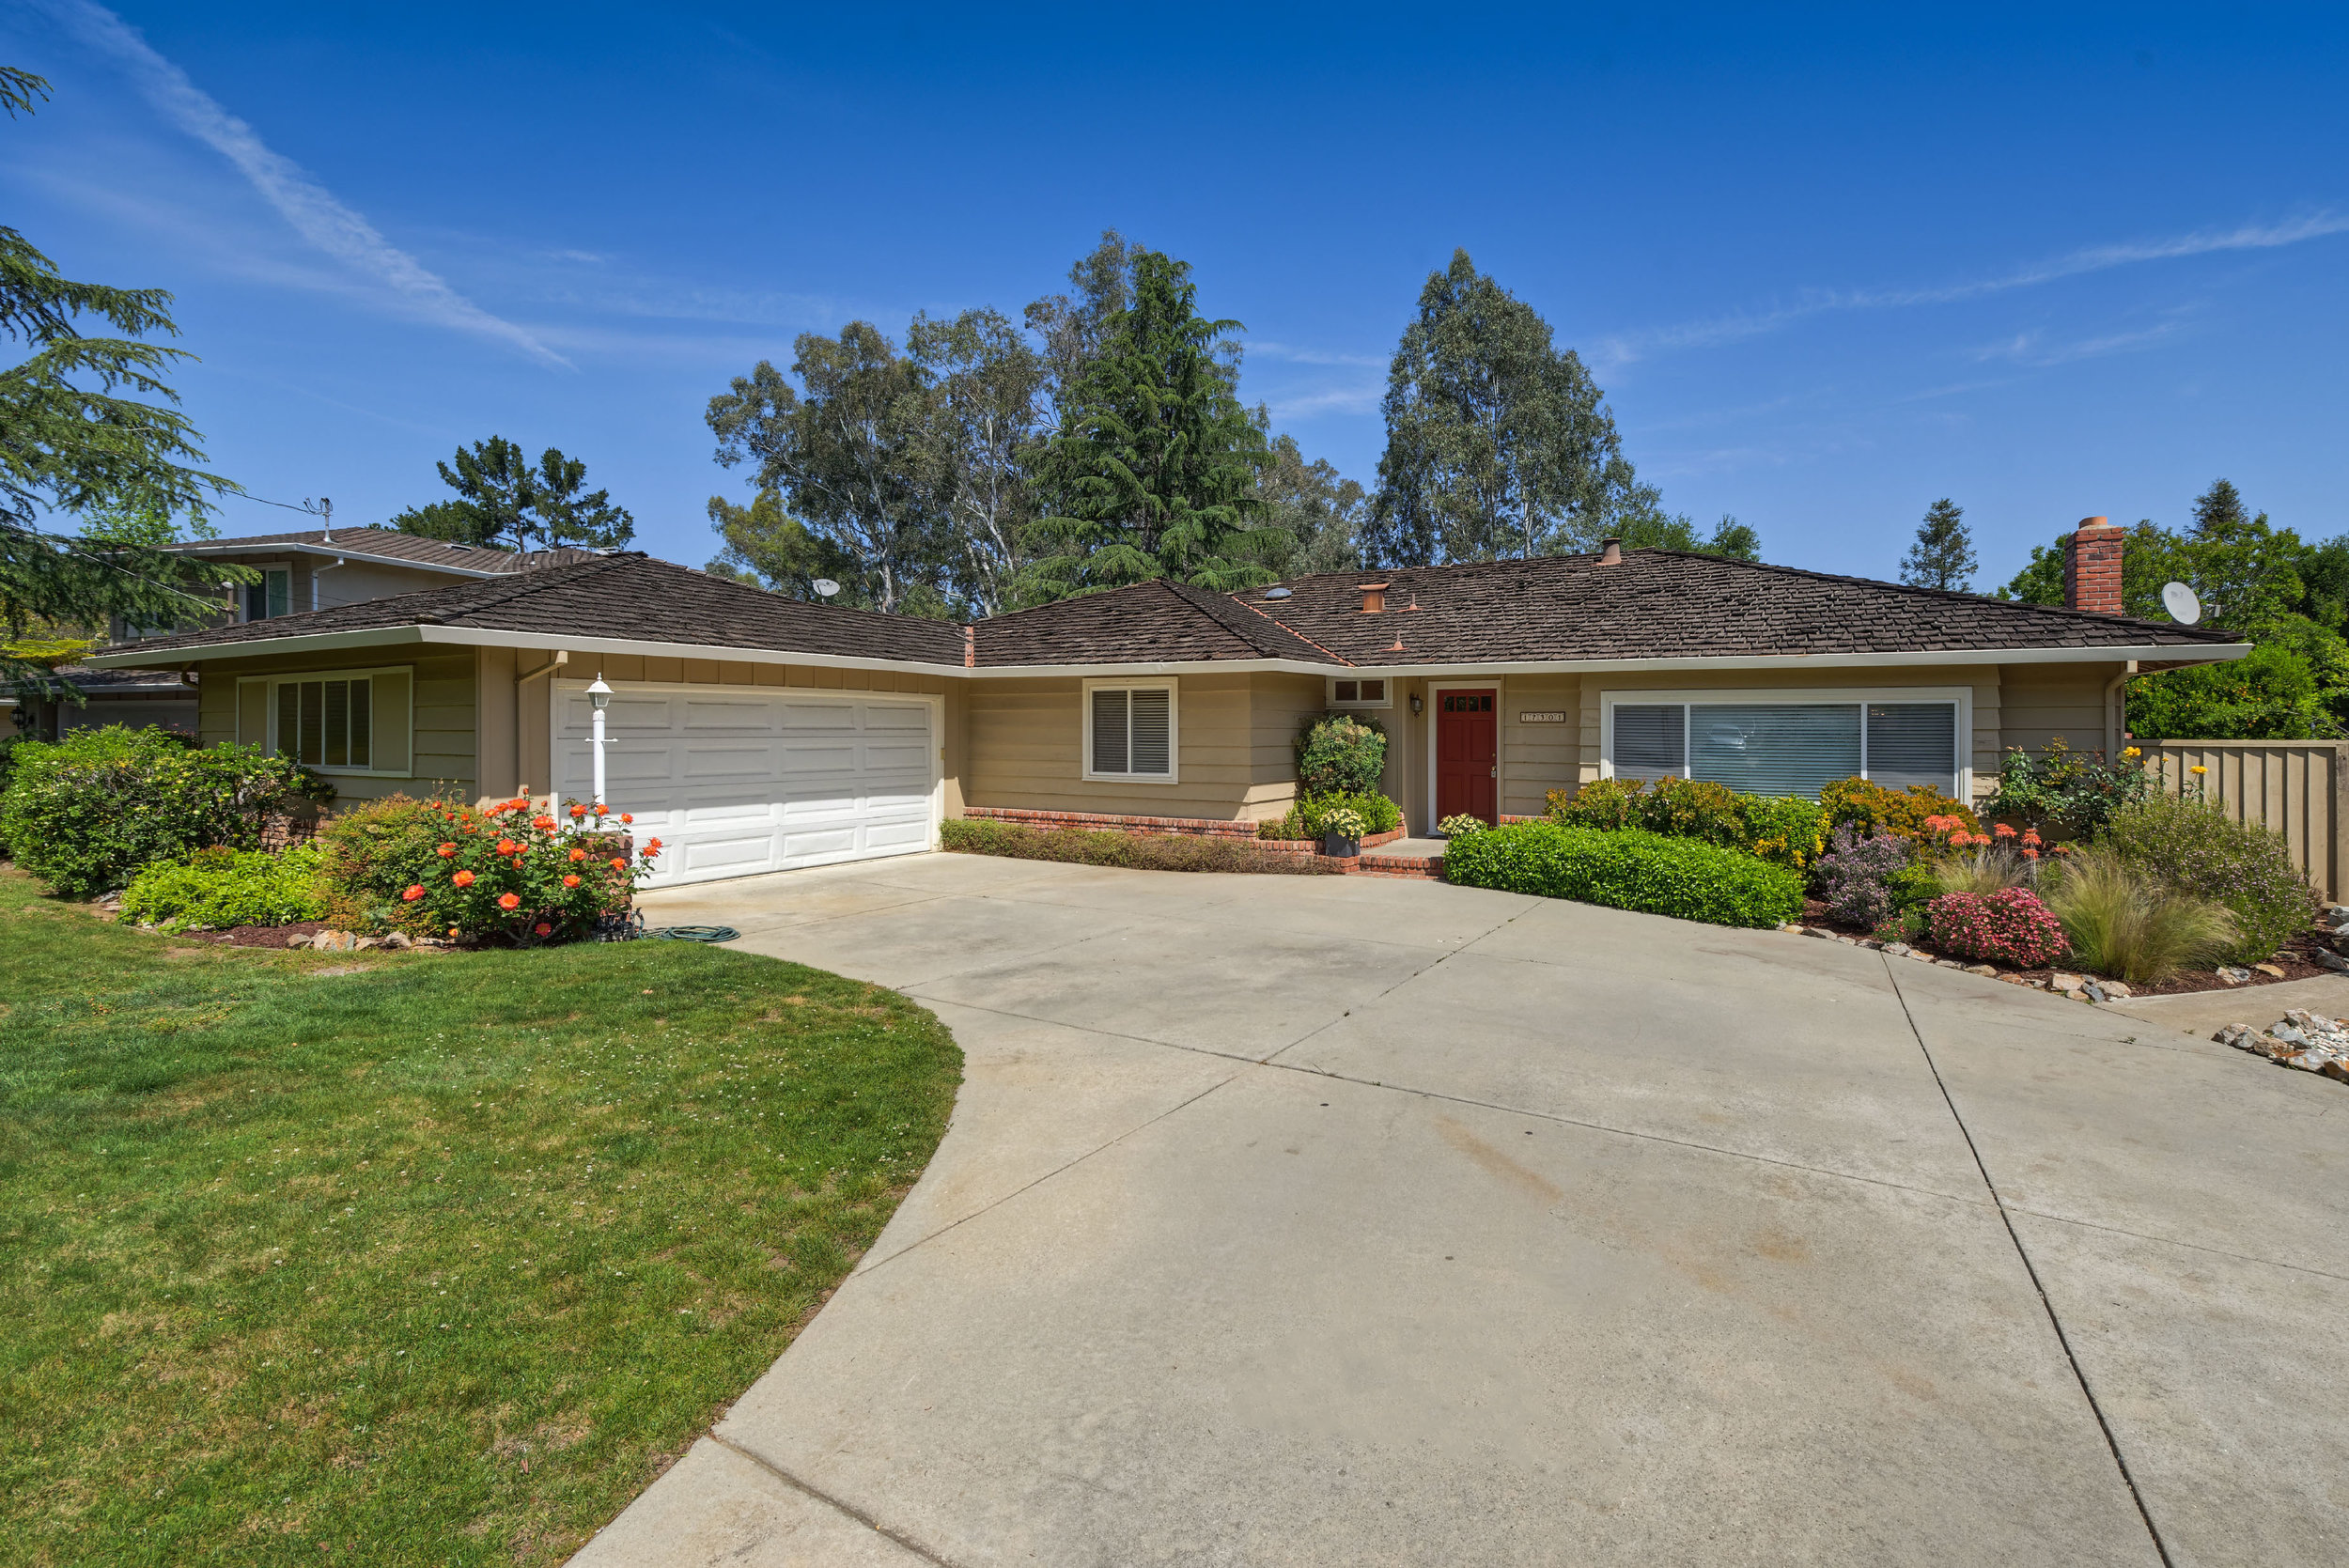 17301 Clearview Drive Los Gatos  3 bedrooms • 3 bathrooms • 2,046 sq ft interior